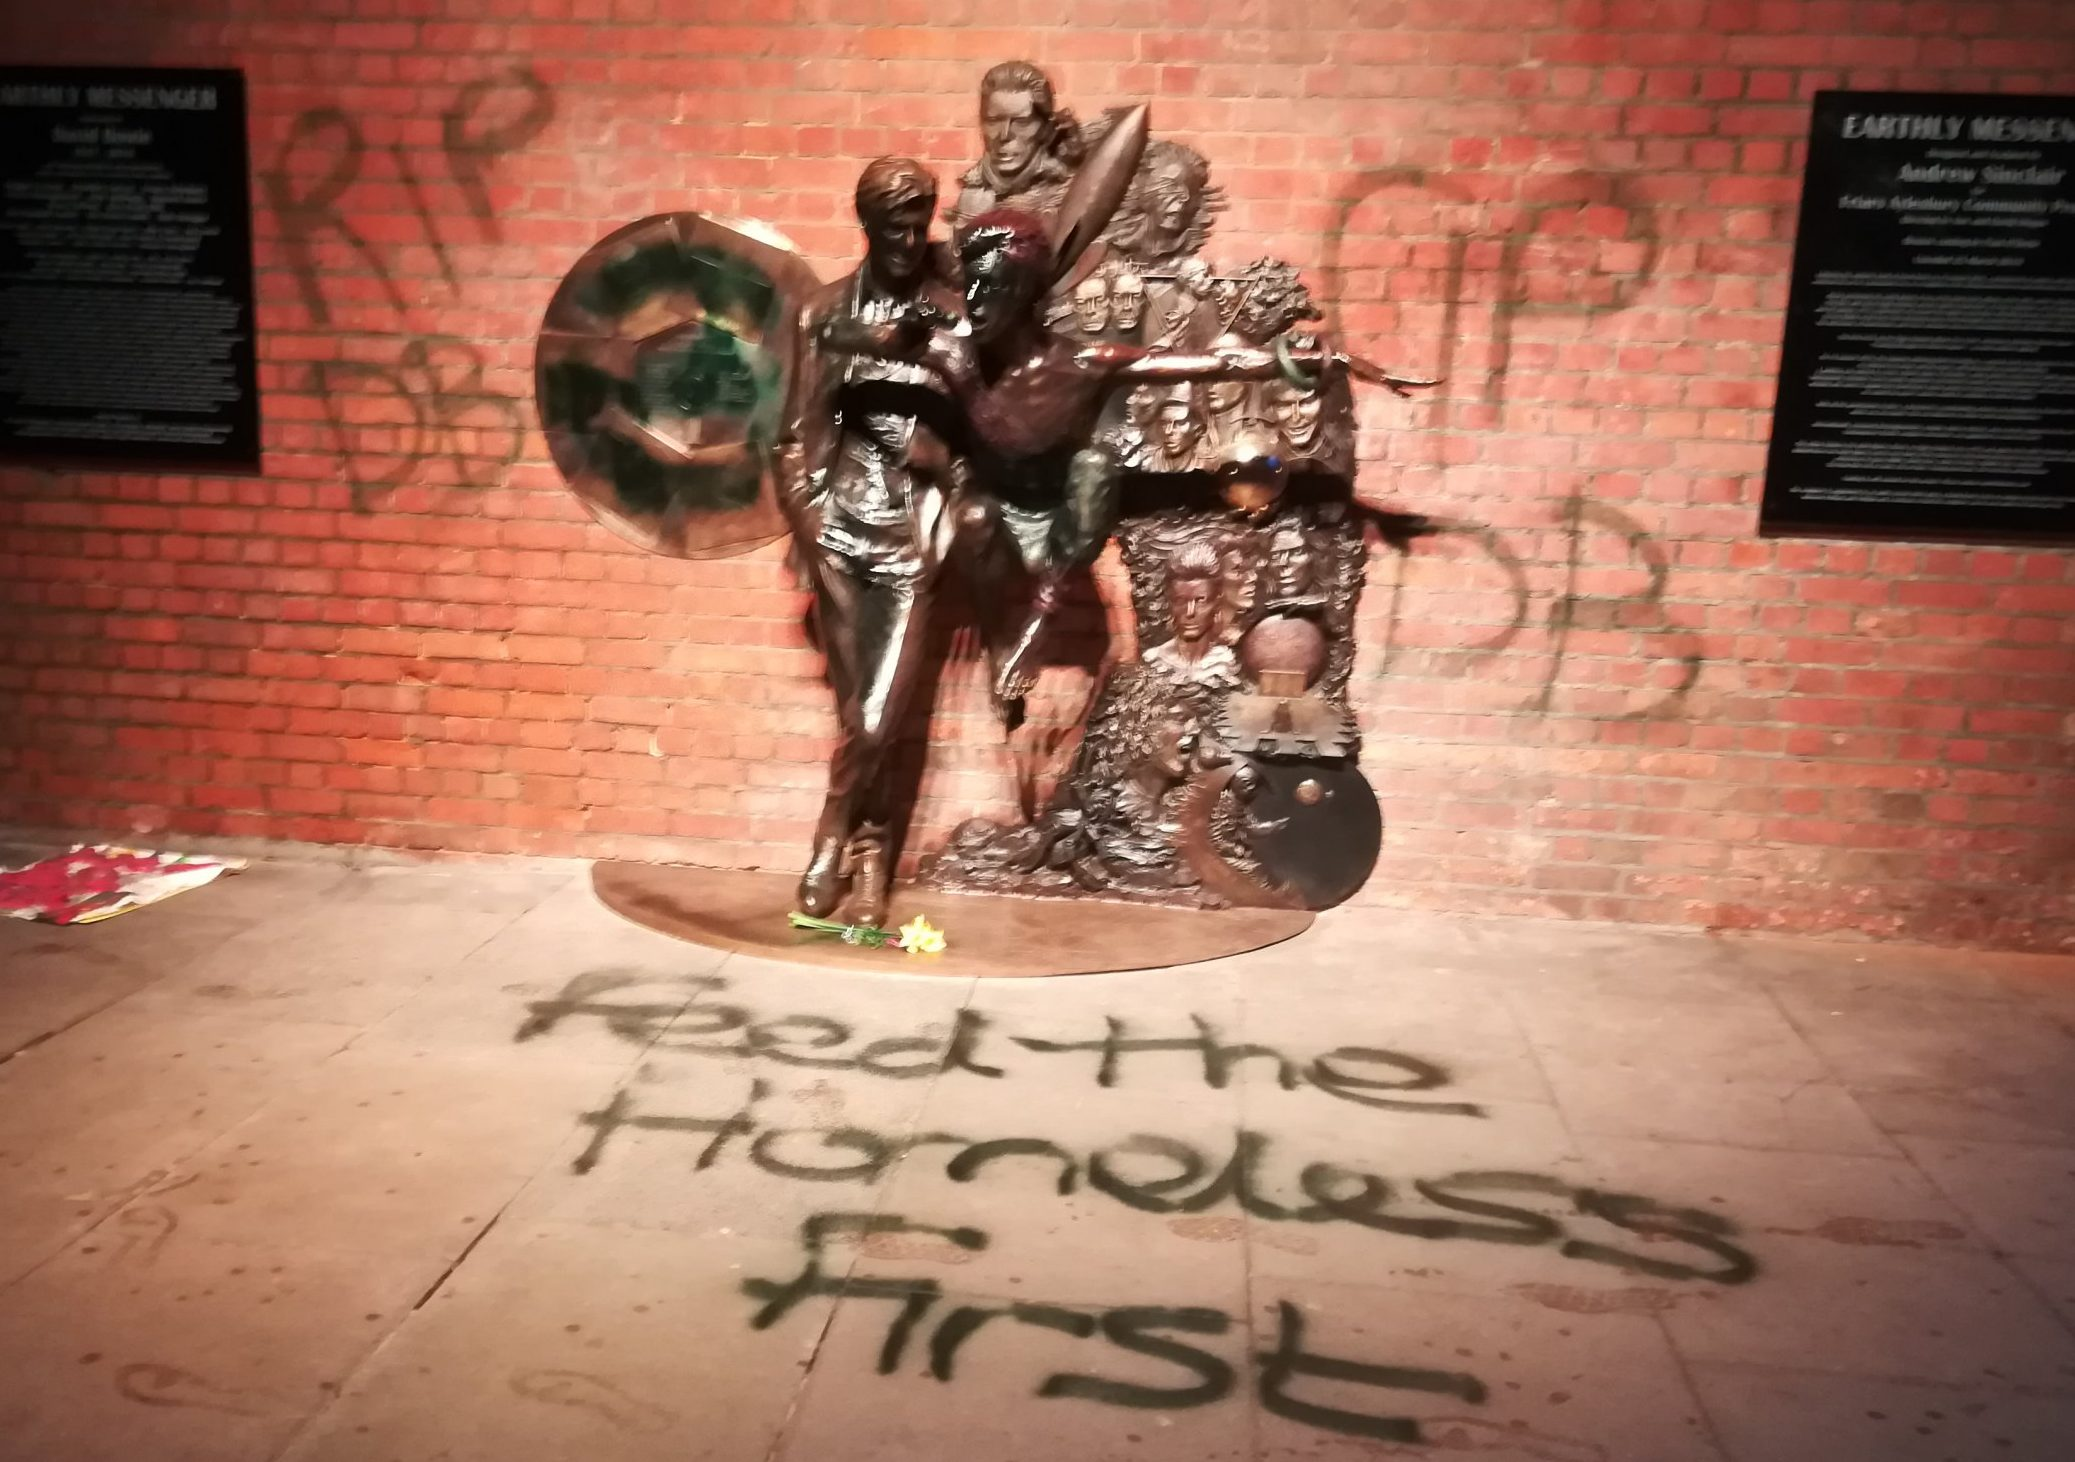 Someone's already vandalised David Bowie statue with 'feed the homeless' Aylesbury picture: Mix96 PERMISSION GRANTED TO Metro.co.uk